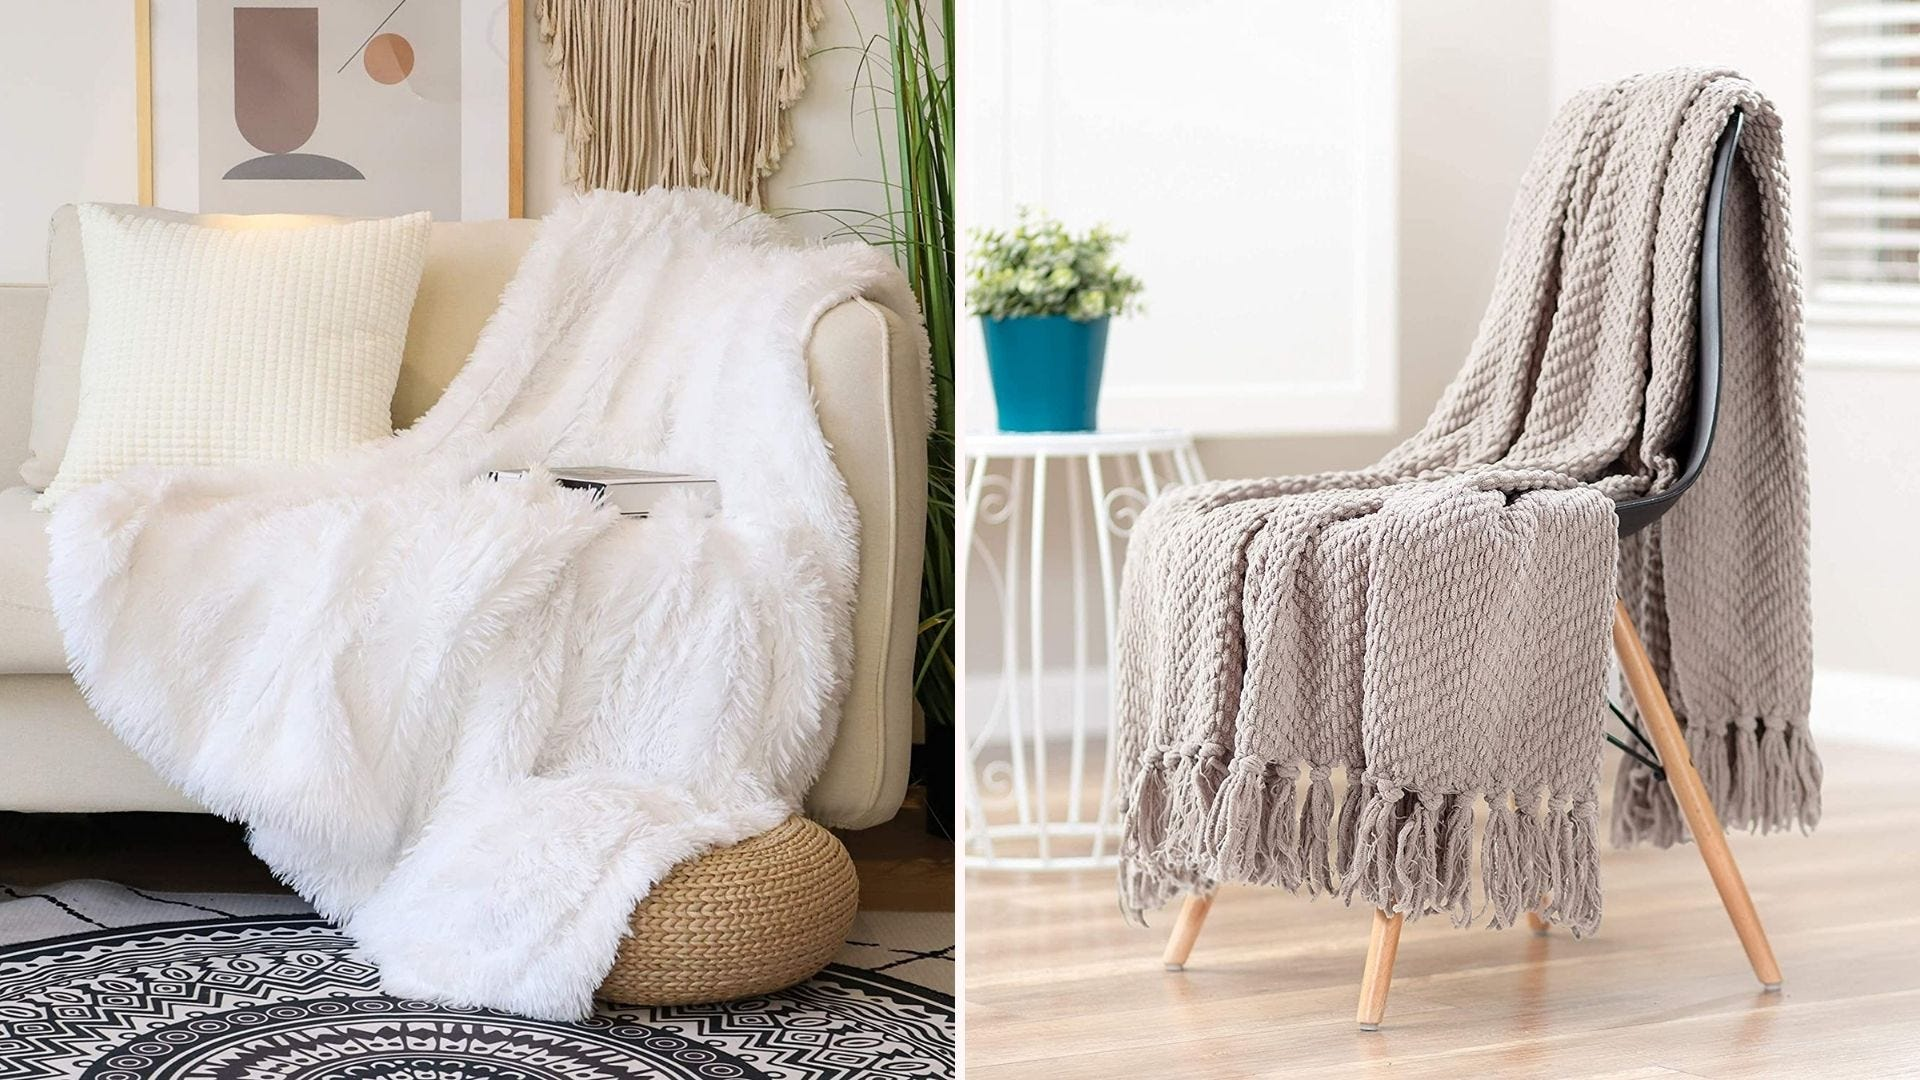 A cream couch with a white faux fur throw; a gray knit throw on a wooden chair